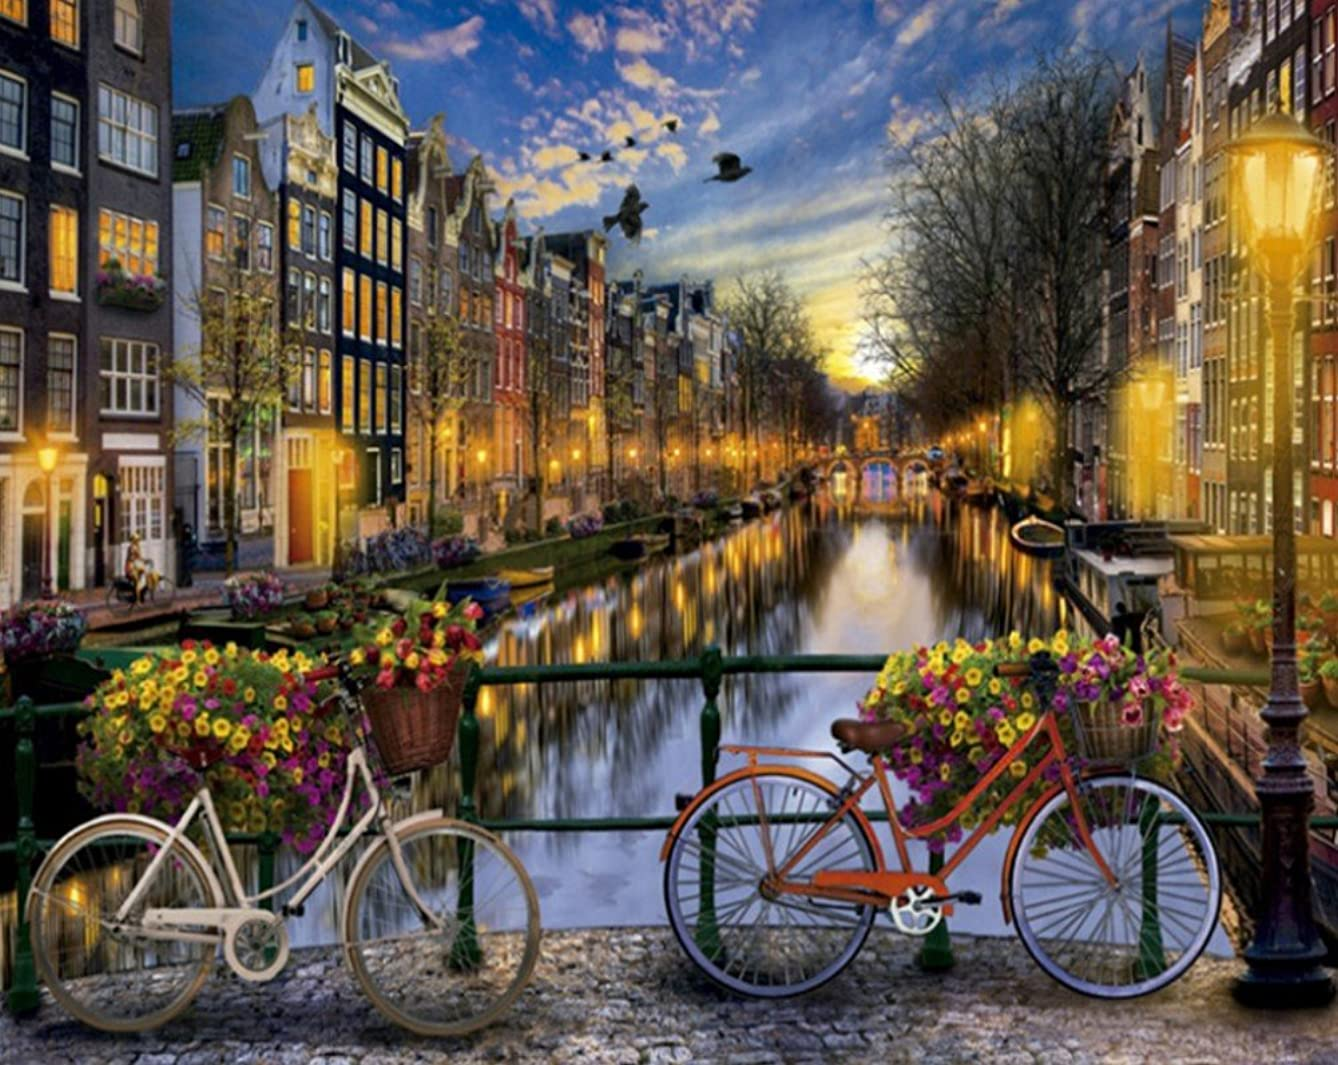 JOLOMOY Paint by Numbers Kits for Adults, DIY Digital Oil Painting by Number for Kids Beginner - Dutch Bicycle River Night Landscape 16X25 inch Number Painting